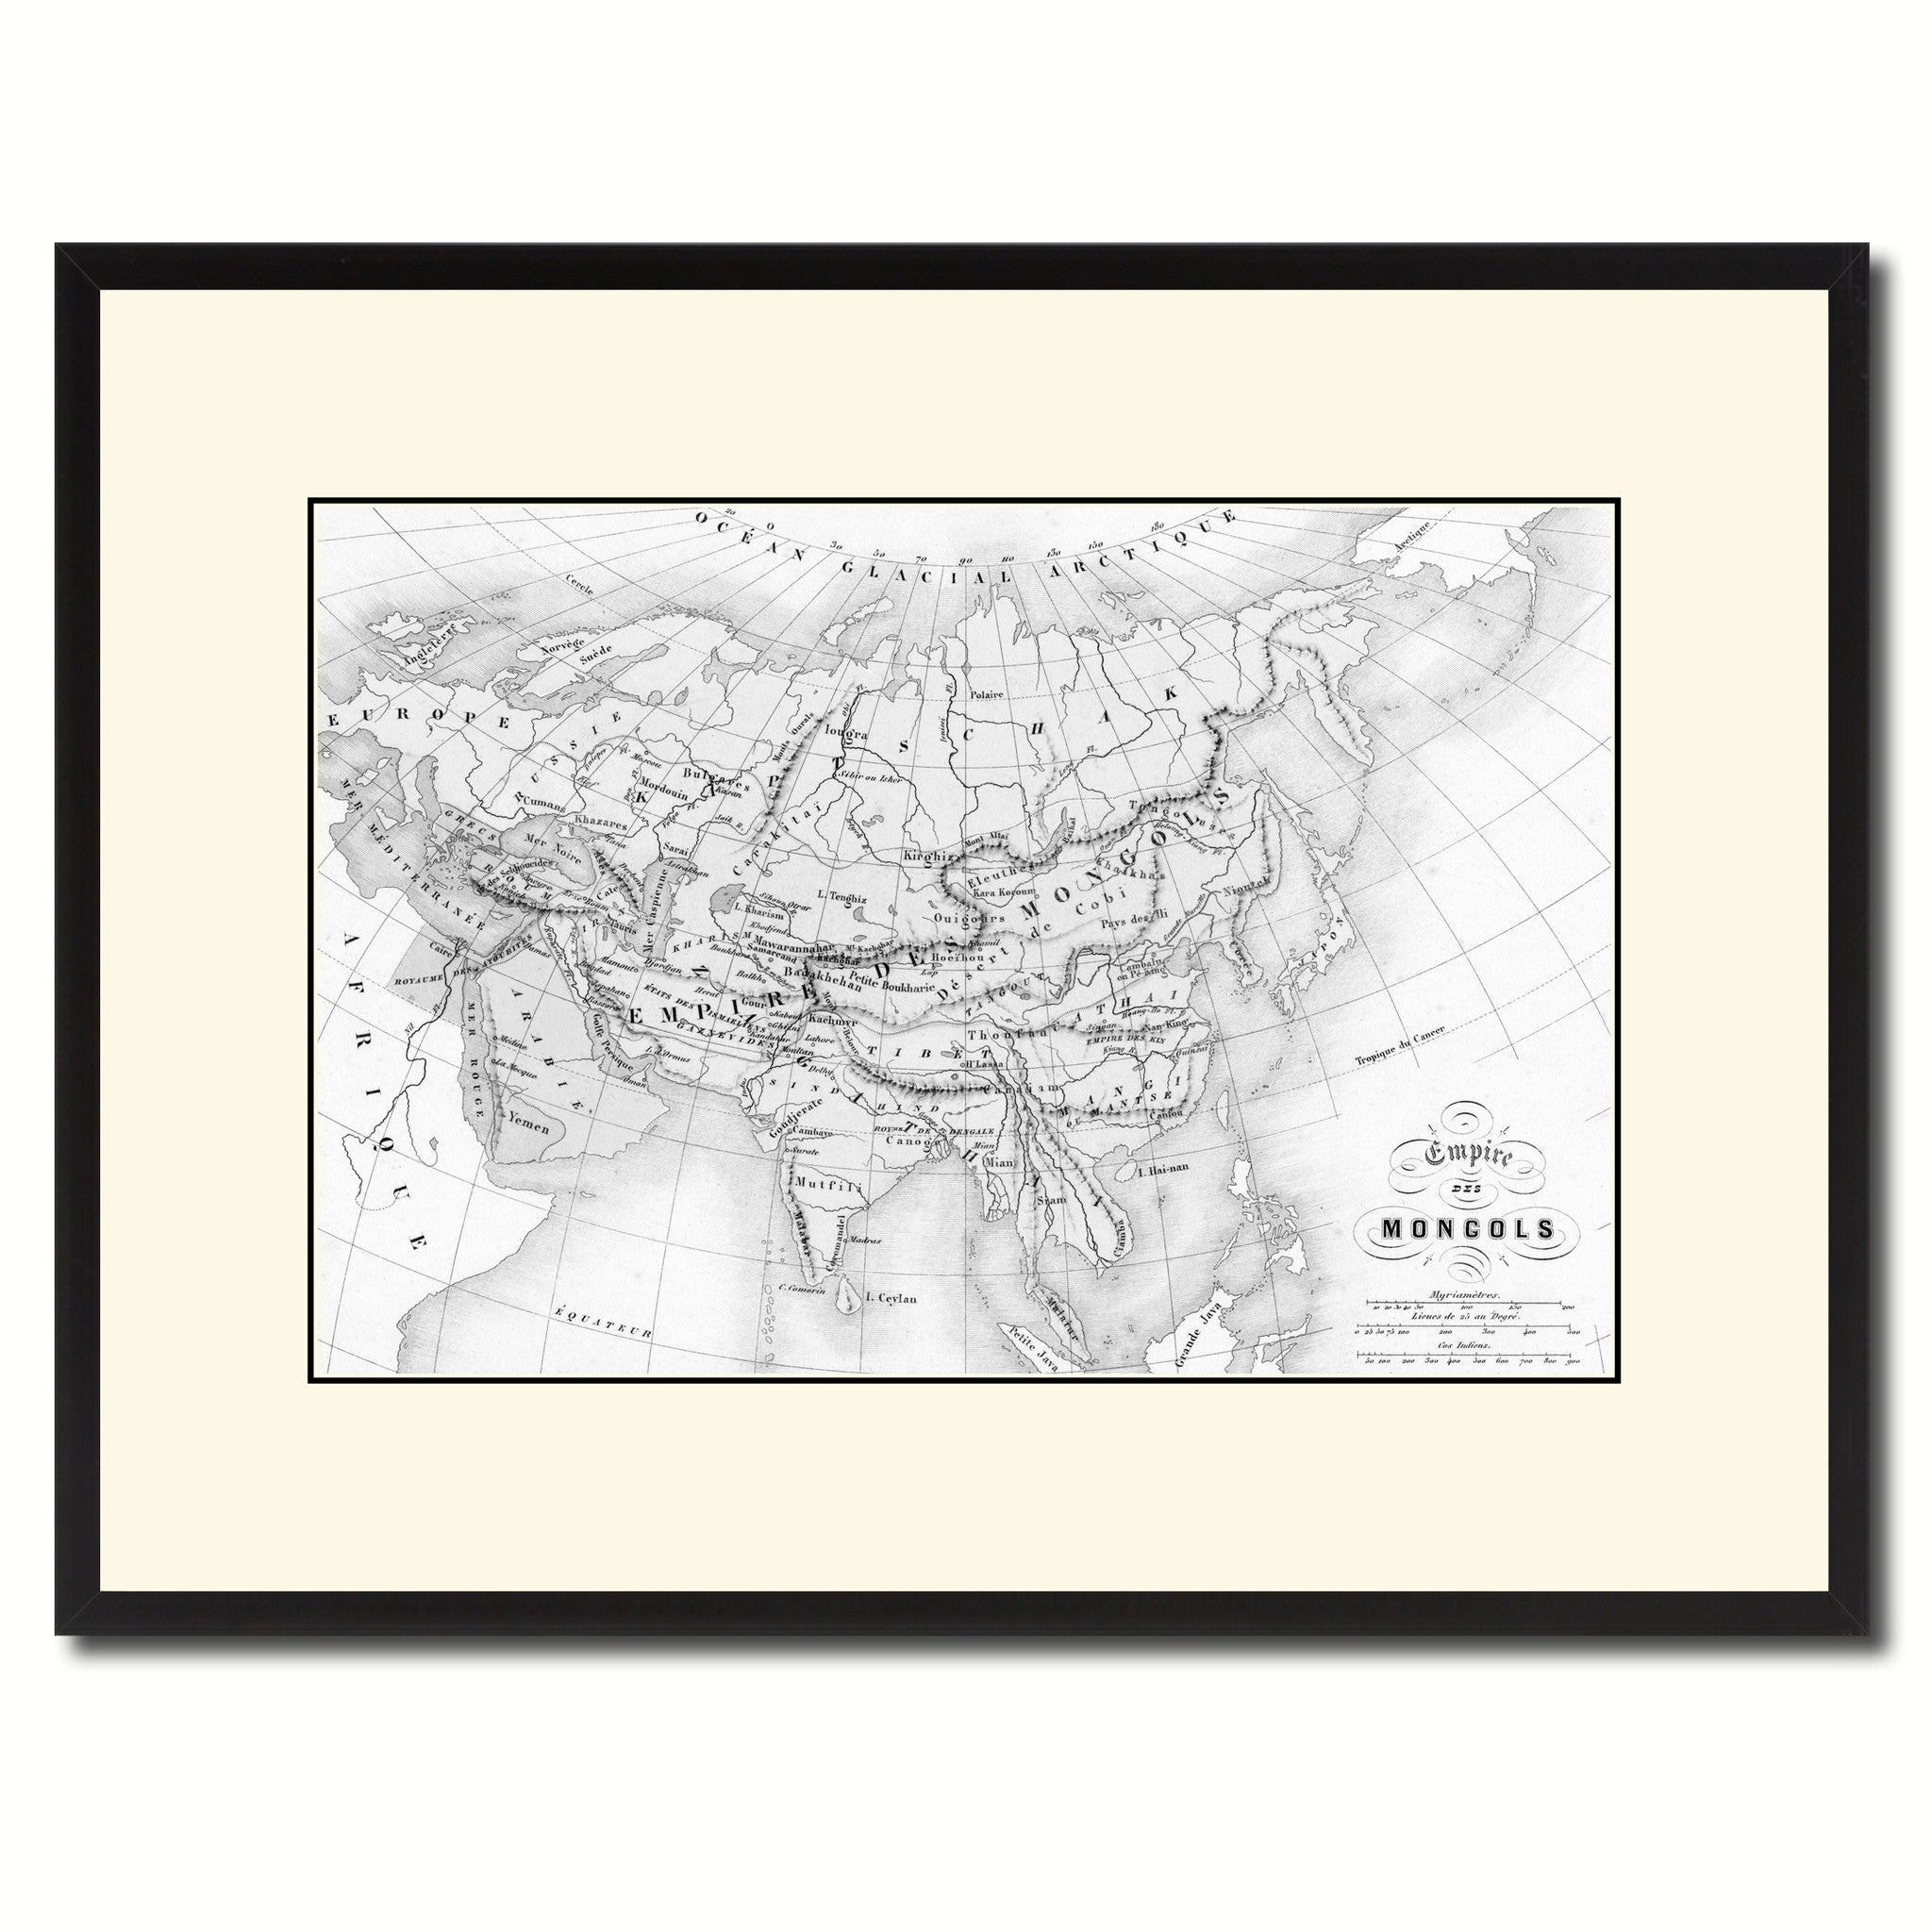 Mongolian Empire Asia Vintage B&W Map Canvas Print, Picture Frame Home Decor Wall Art Gift Ideas